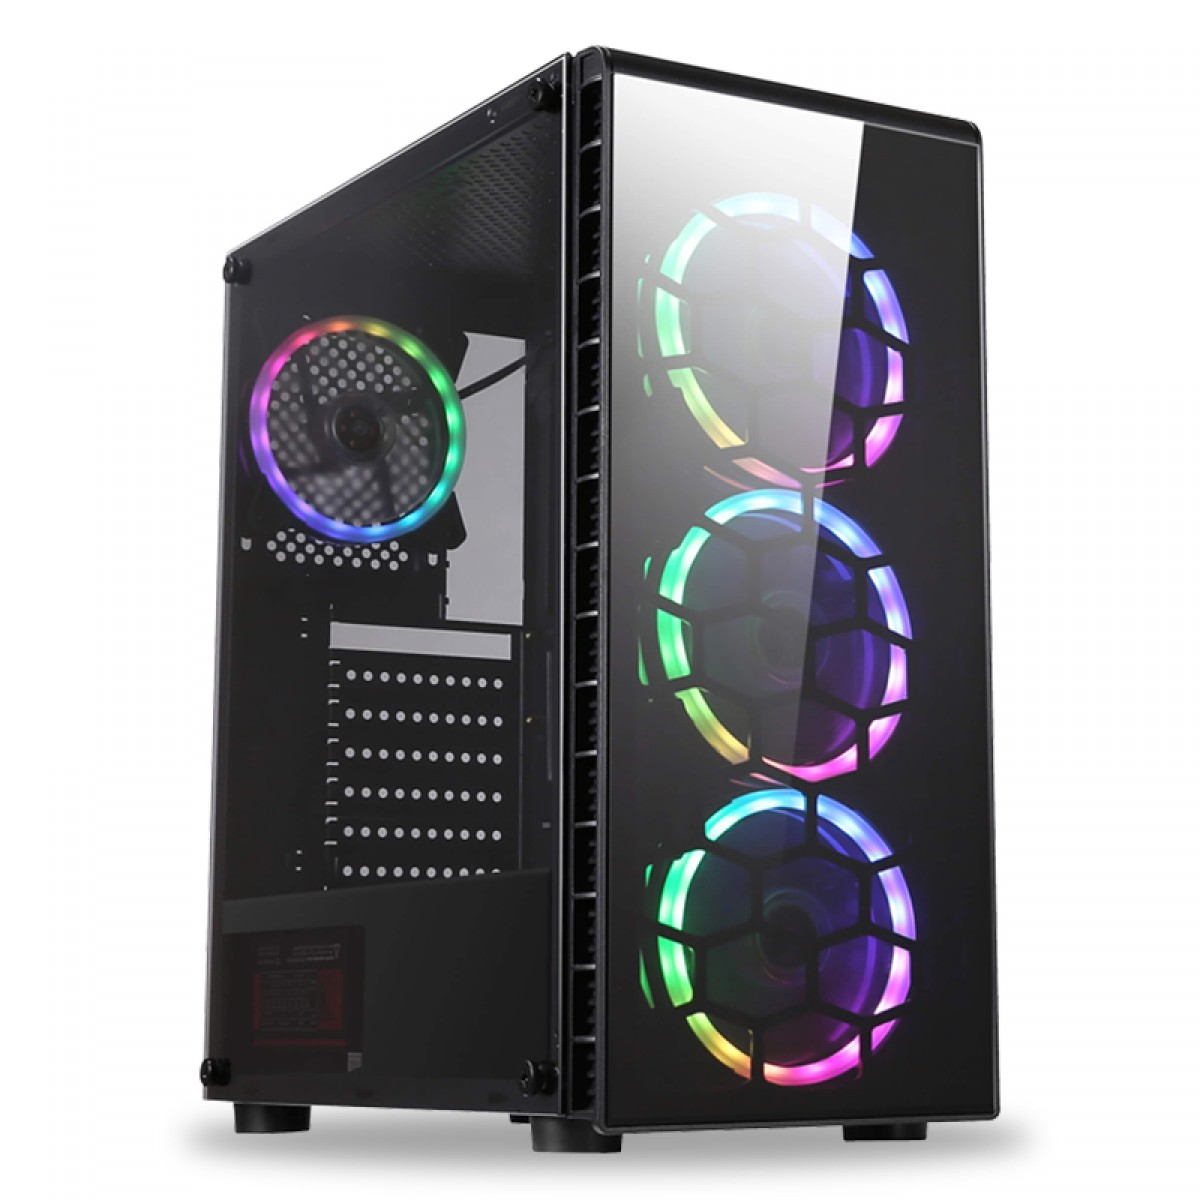 Pc Gamer T-Power Brutal Lvl-3 AMD Ryzen 5 3500 / Geforce RTX 2070 8GB / DDR4 16GB / HD 1Tb / 600W